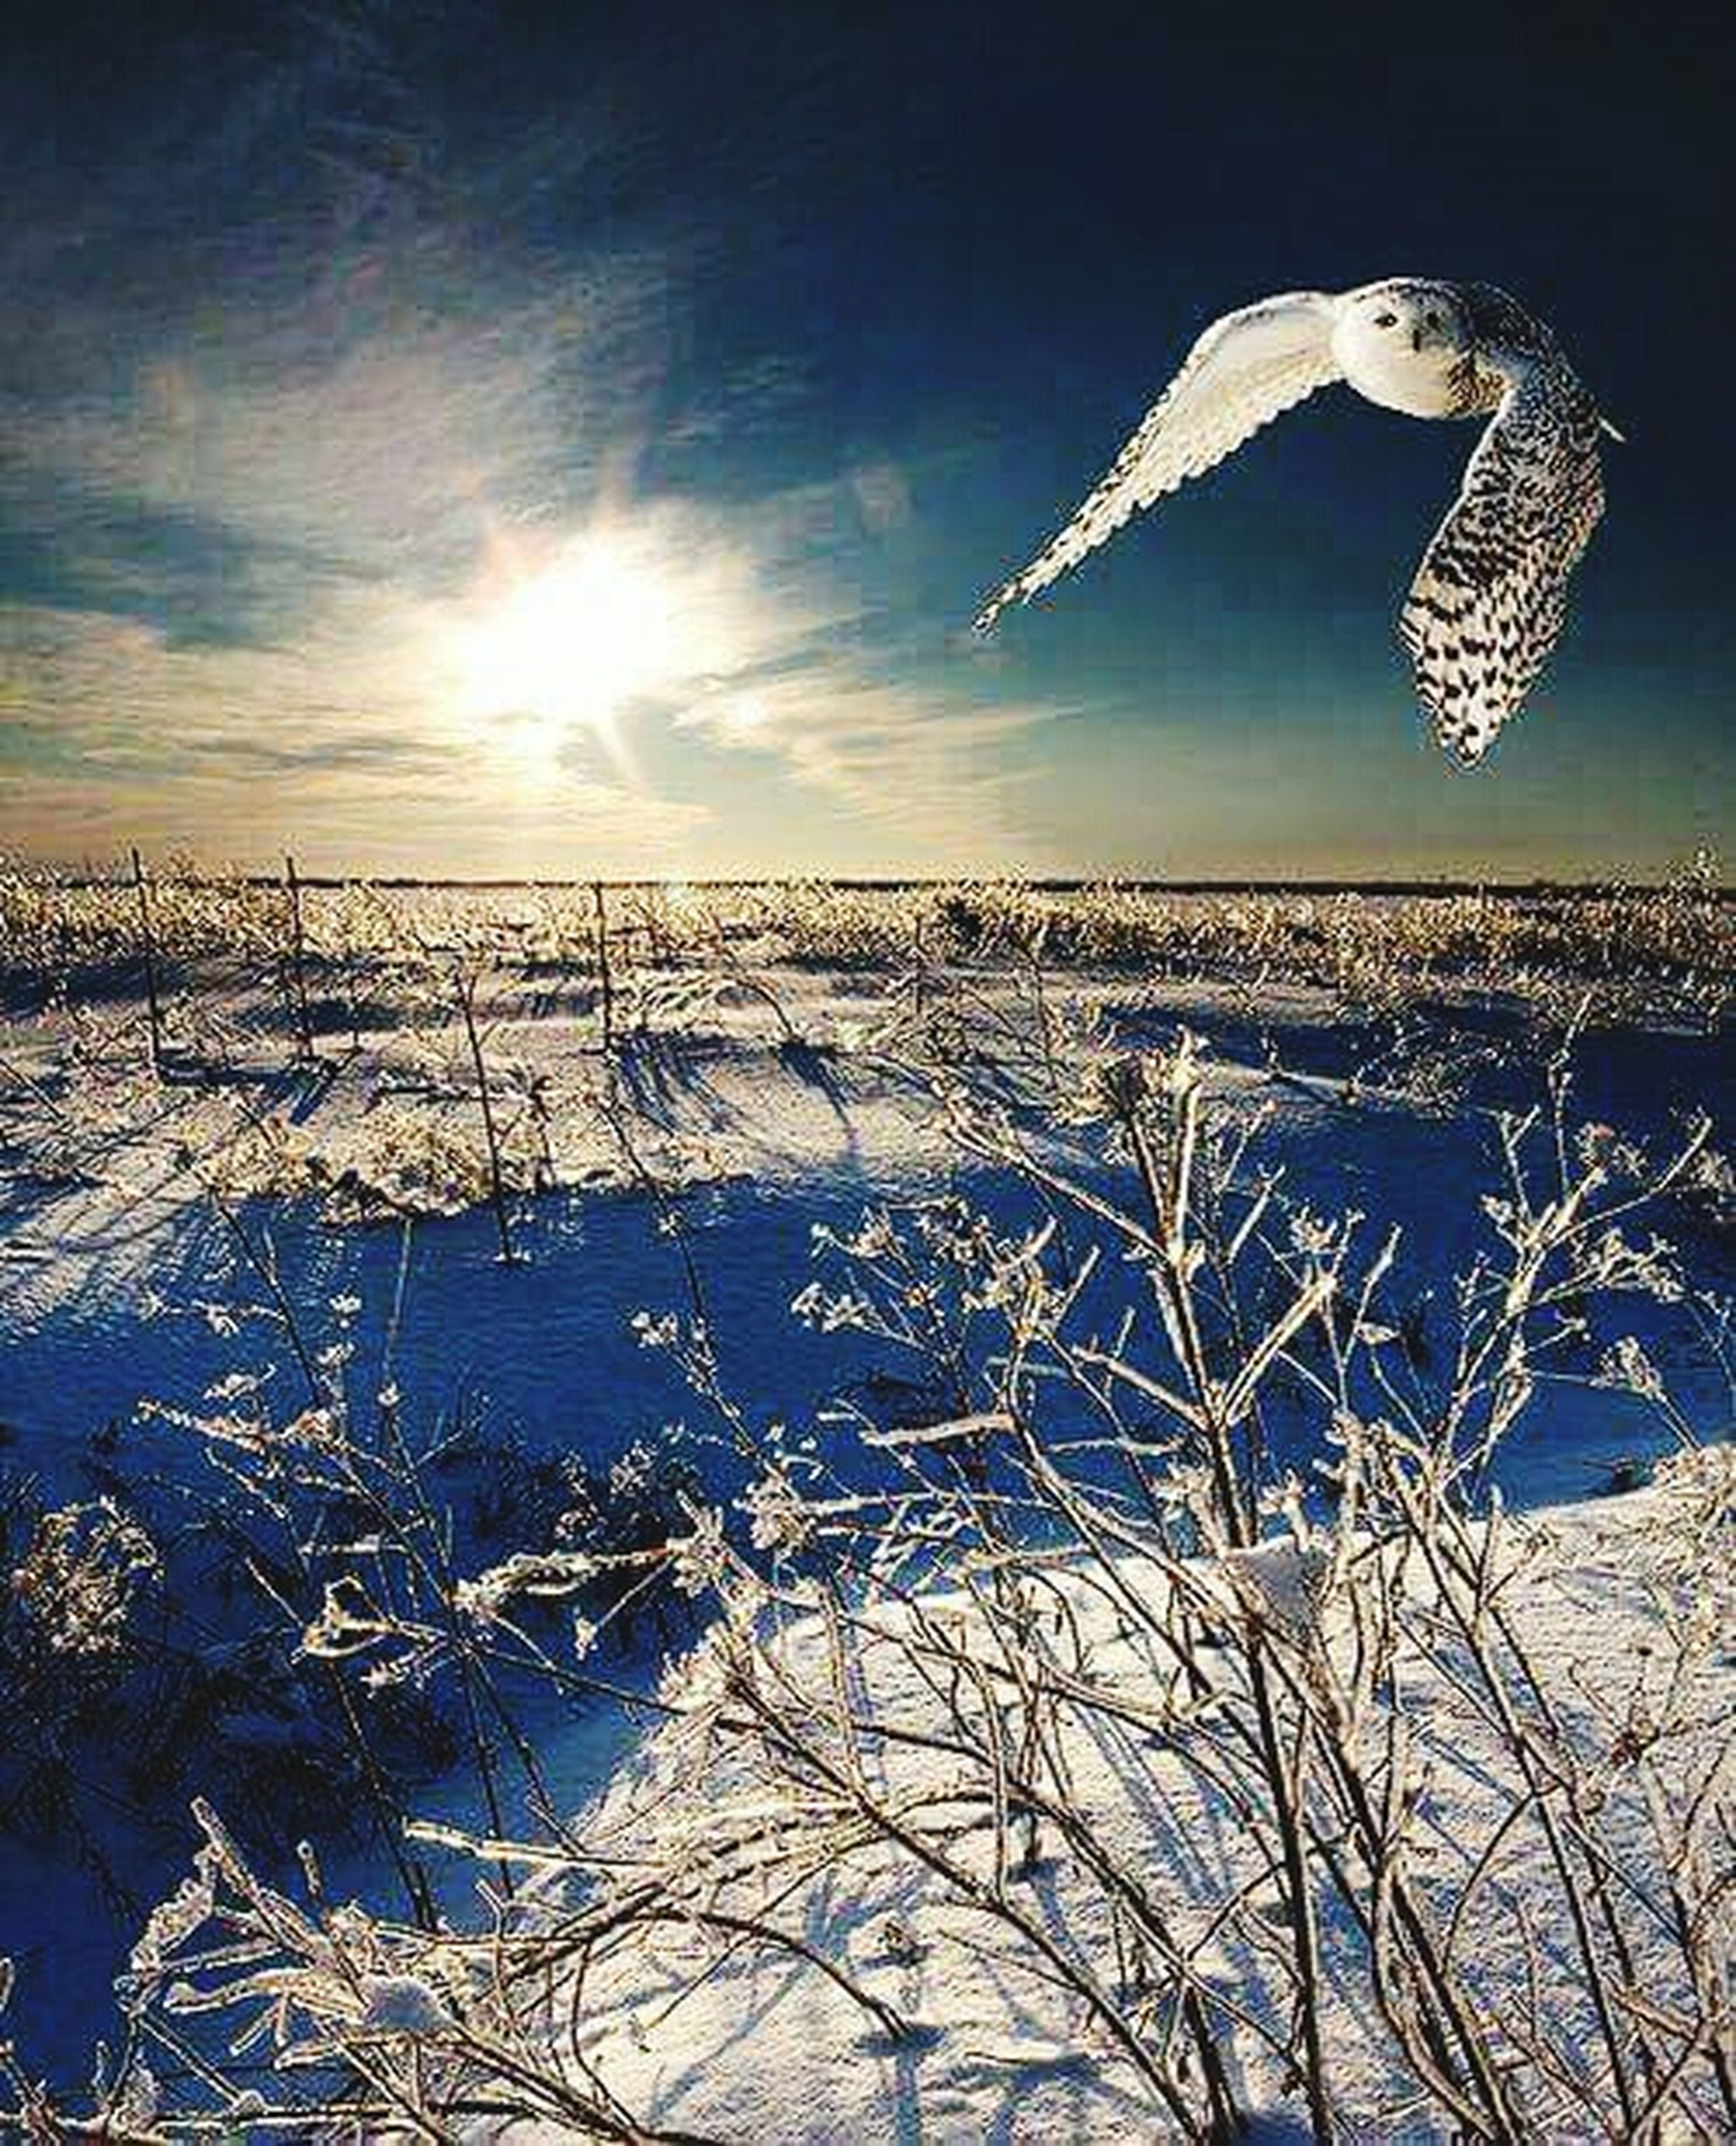 flying, sky, bird, snow, animal themes, nature, cold temperature, mid-air, beauty in nature, winter, tranquility, tranquil scene, blue, sunlight, scenics, seagull, water, animals in the wild, wildlife, sun